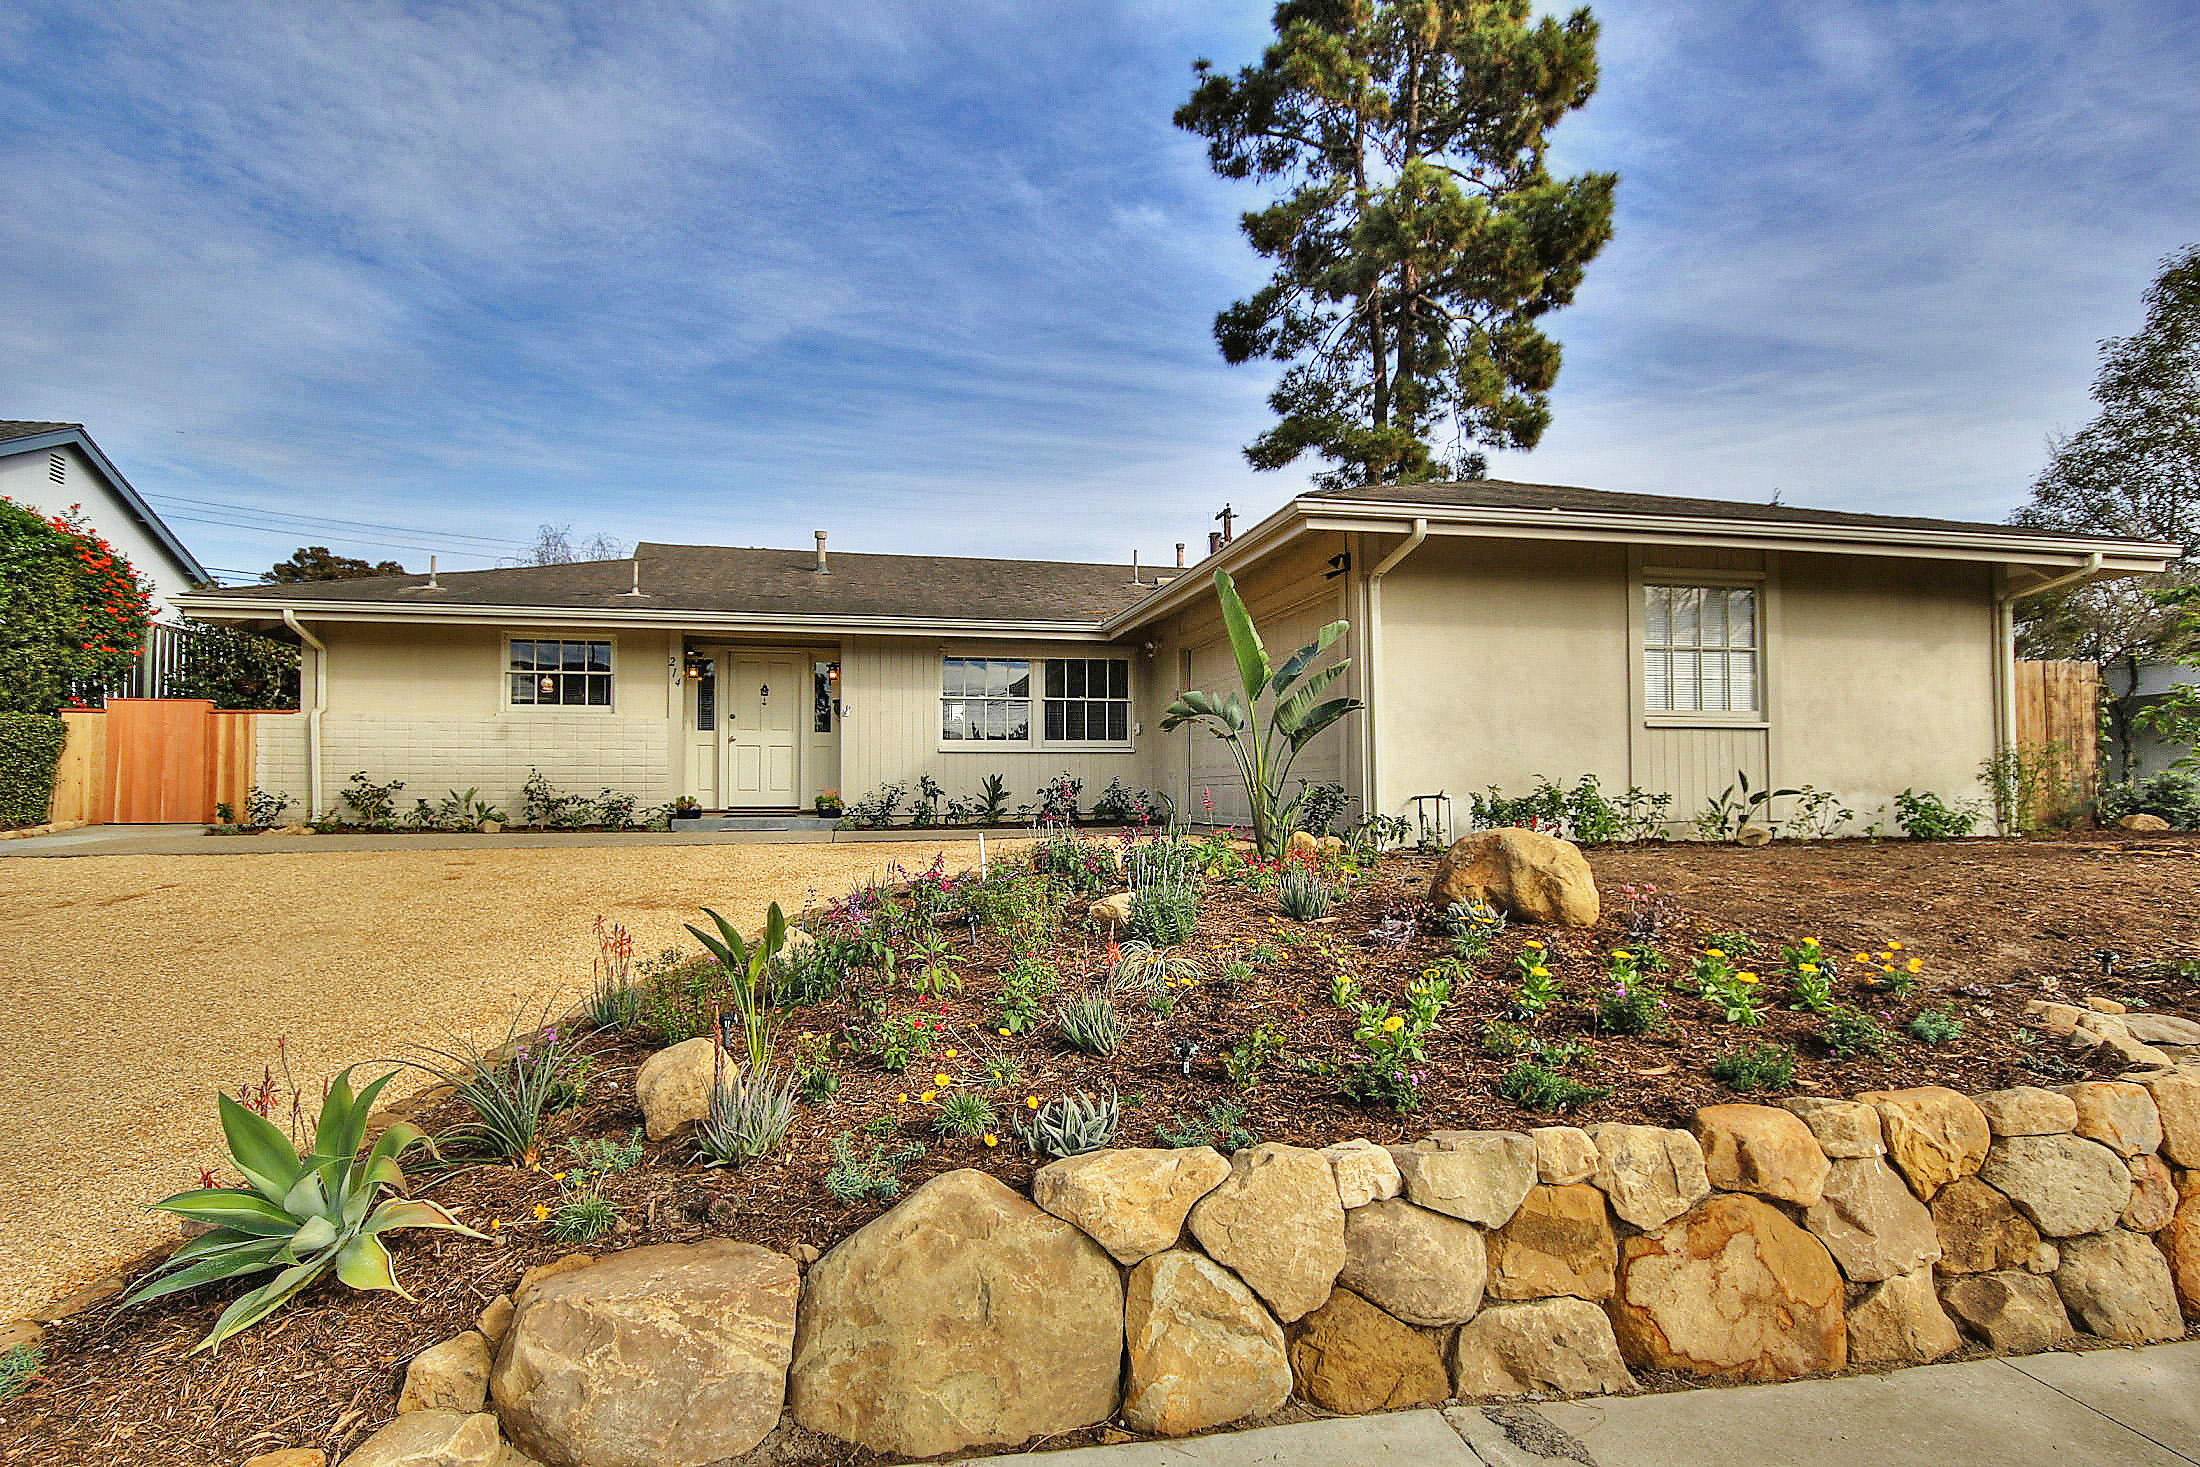 Property photo for 214 Cordova Dr Santa Barbara, California 93109 - 15-360